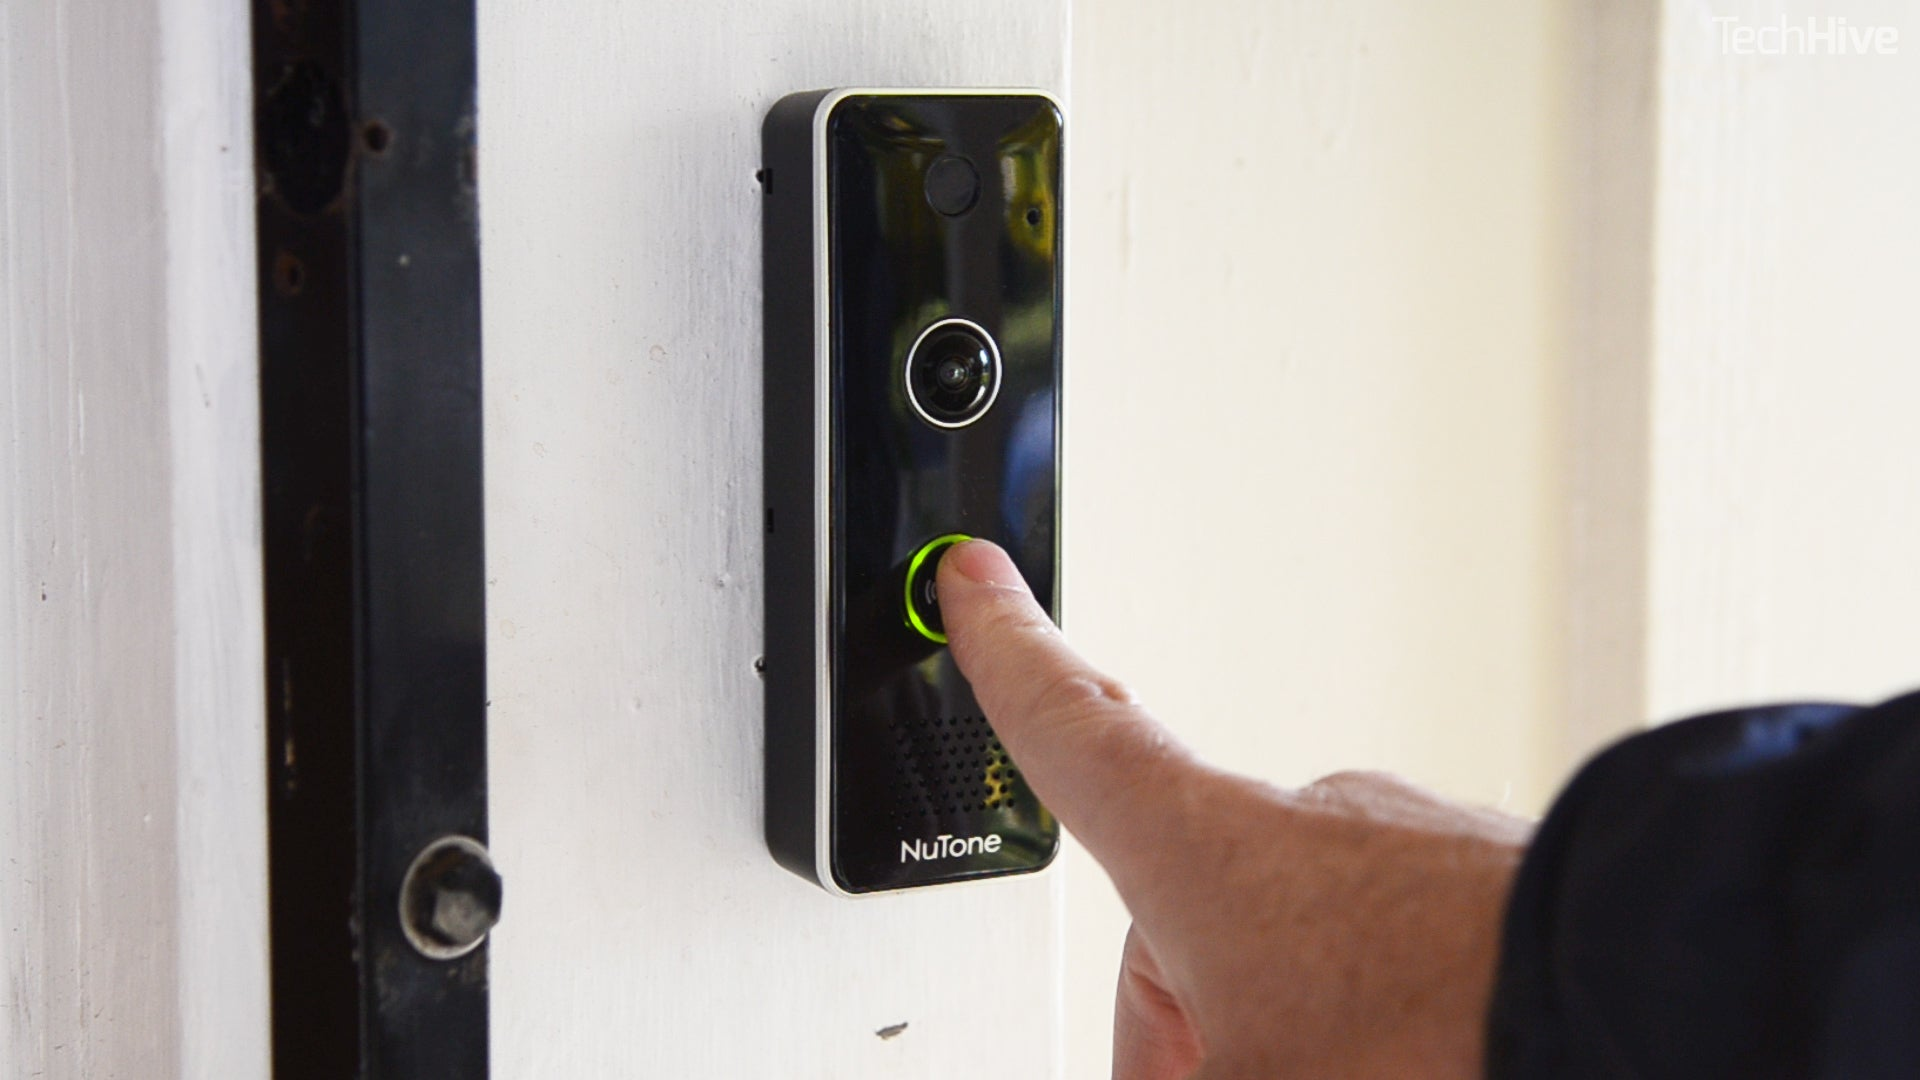 flashing chime with strobe doorbell harris wireless door ada nt compliant nutone bell system signaler